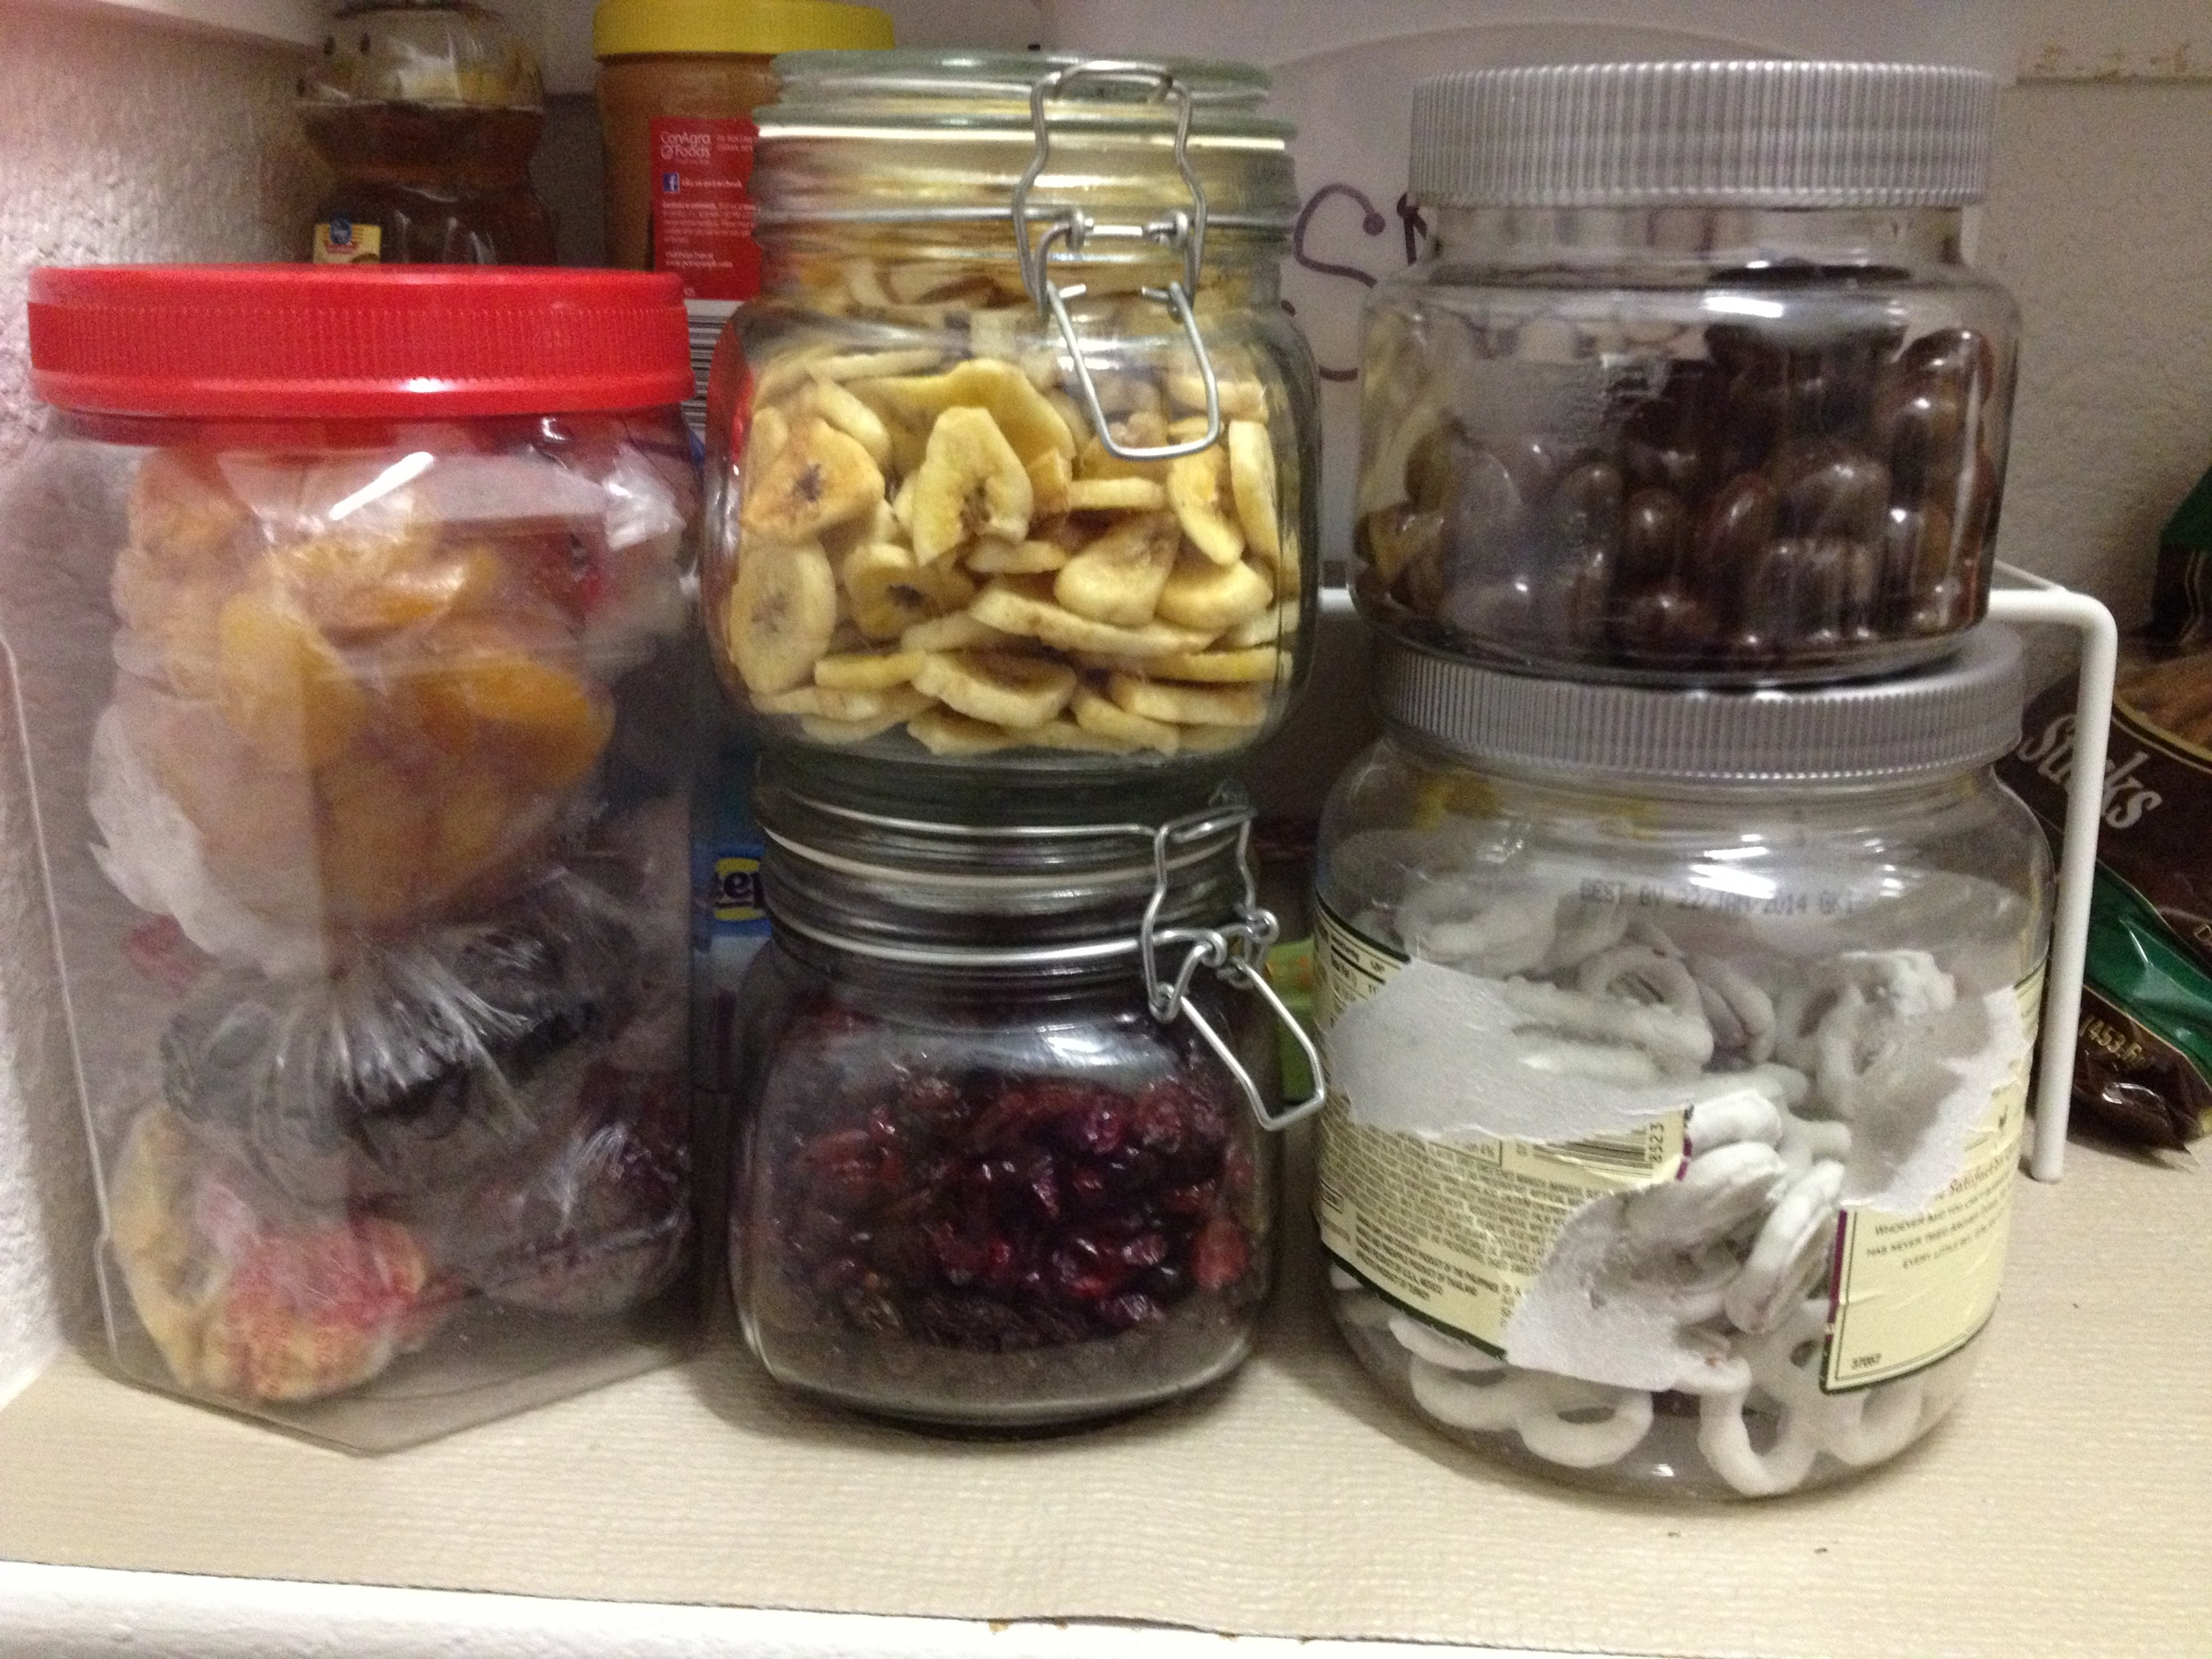 Hinged canisters from Dollar Tree. Upcycled Market Pantry trail mix containers for pretzels and dark chocolate - still need to remove the label on the big one. HUGE Jelly Belly container for some other dried yummies -- and yes, I will probably spray paint that lid too!